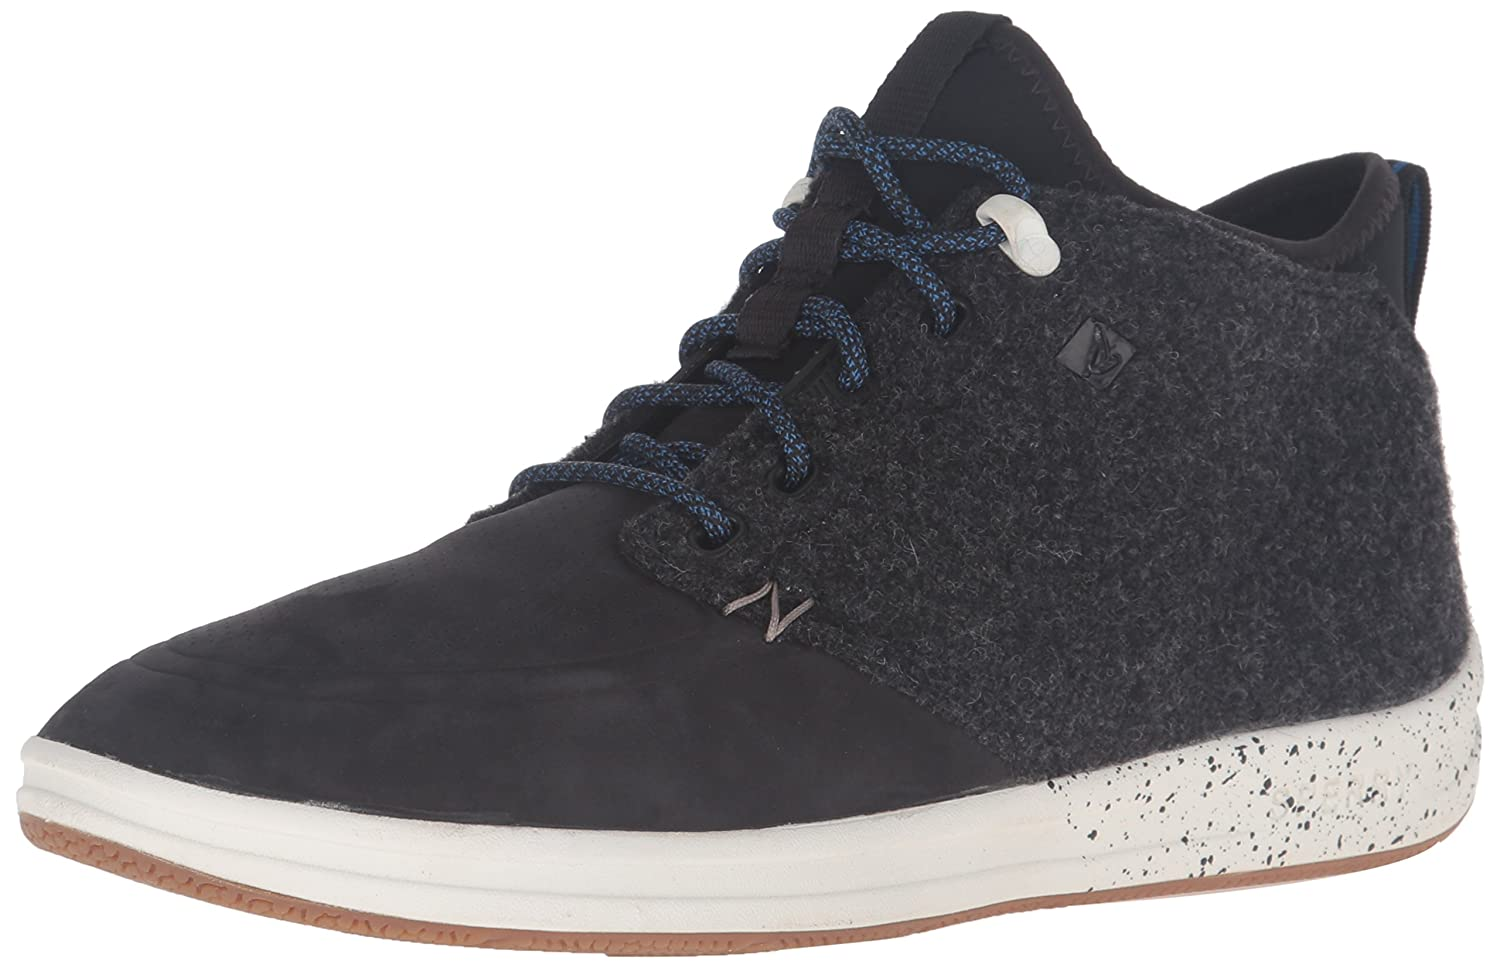 Sperry Top-Sider Top-Sider Top-Sider Men's Gamefish Chukka Stiefel 59fe6c